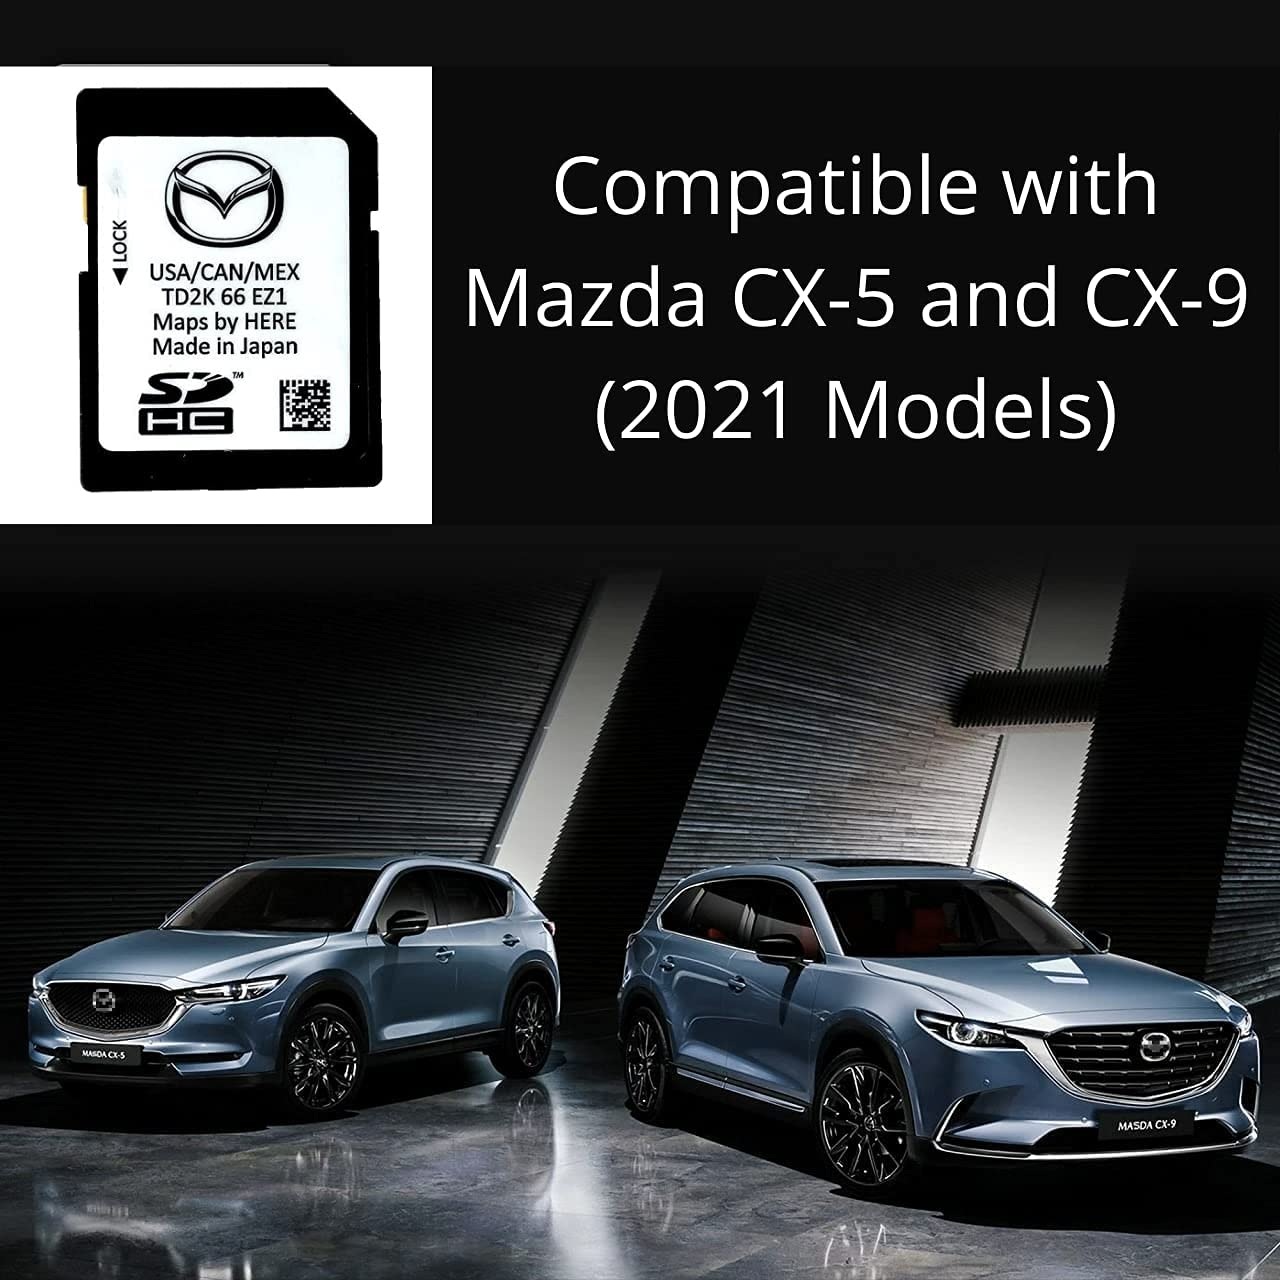 Latest 2021 Navigation Map GPS SD Card for Mazda CX-5 and CX-9   TD2K-66-EZ1   USA/CAN/MEX